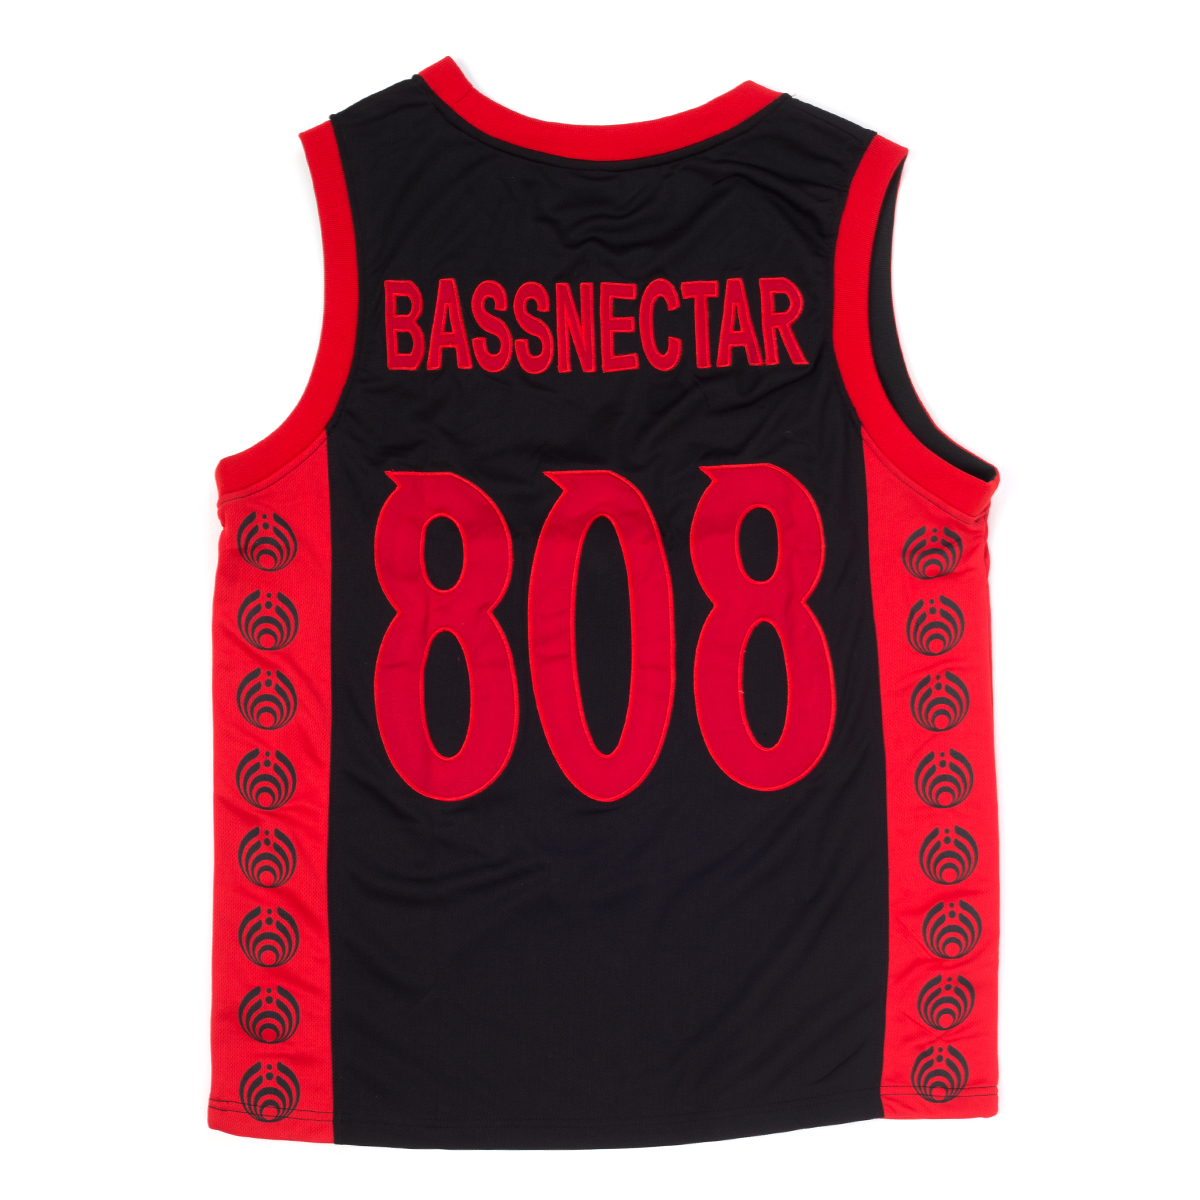 Bassdrop 808 Basketball Jersey - Red/Black